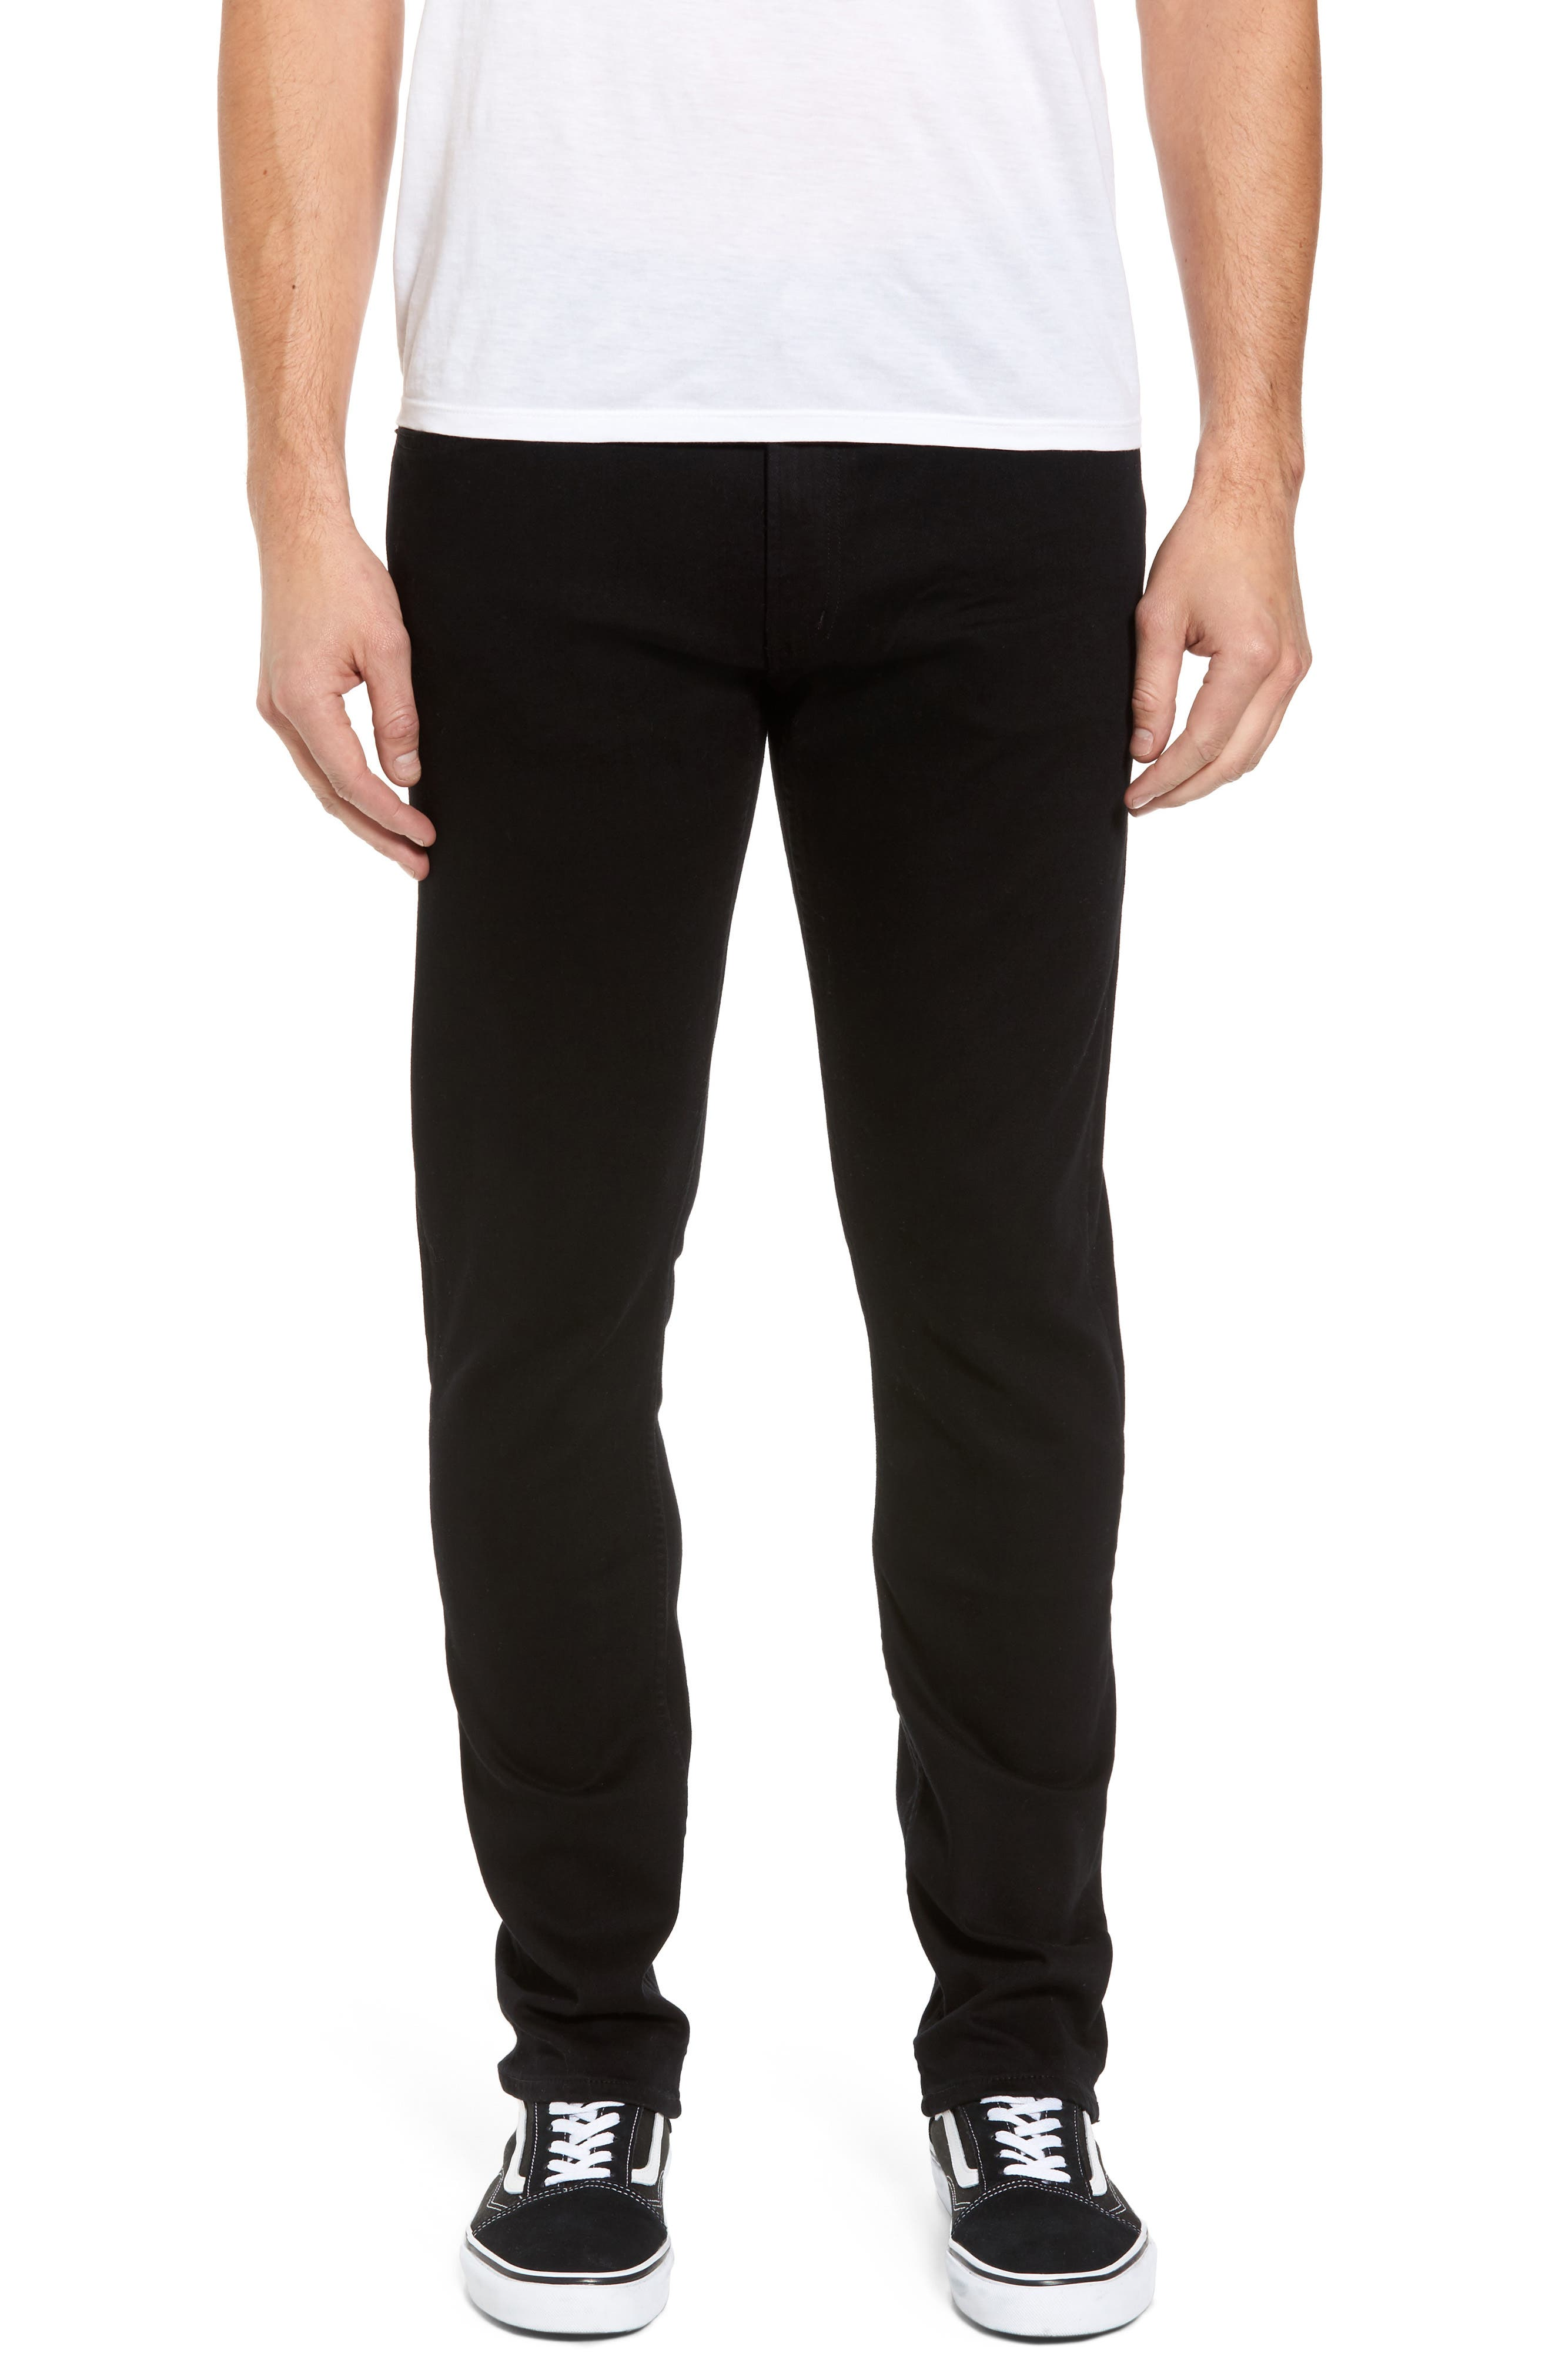 Bowery Slim Fit Jeans,                         Main,                         color, 007